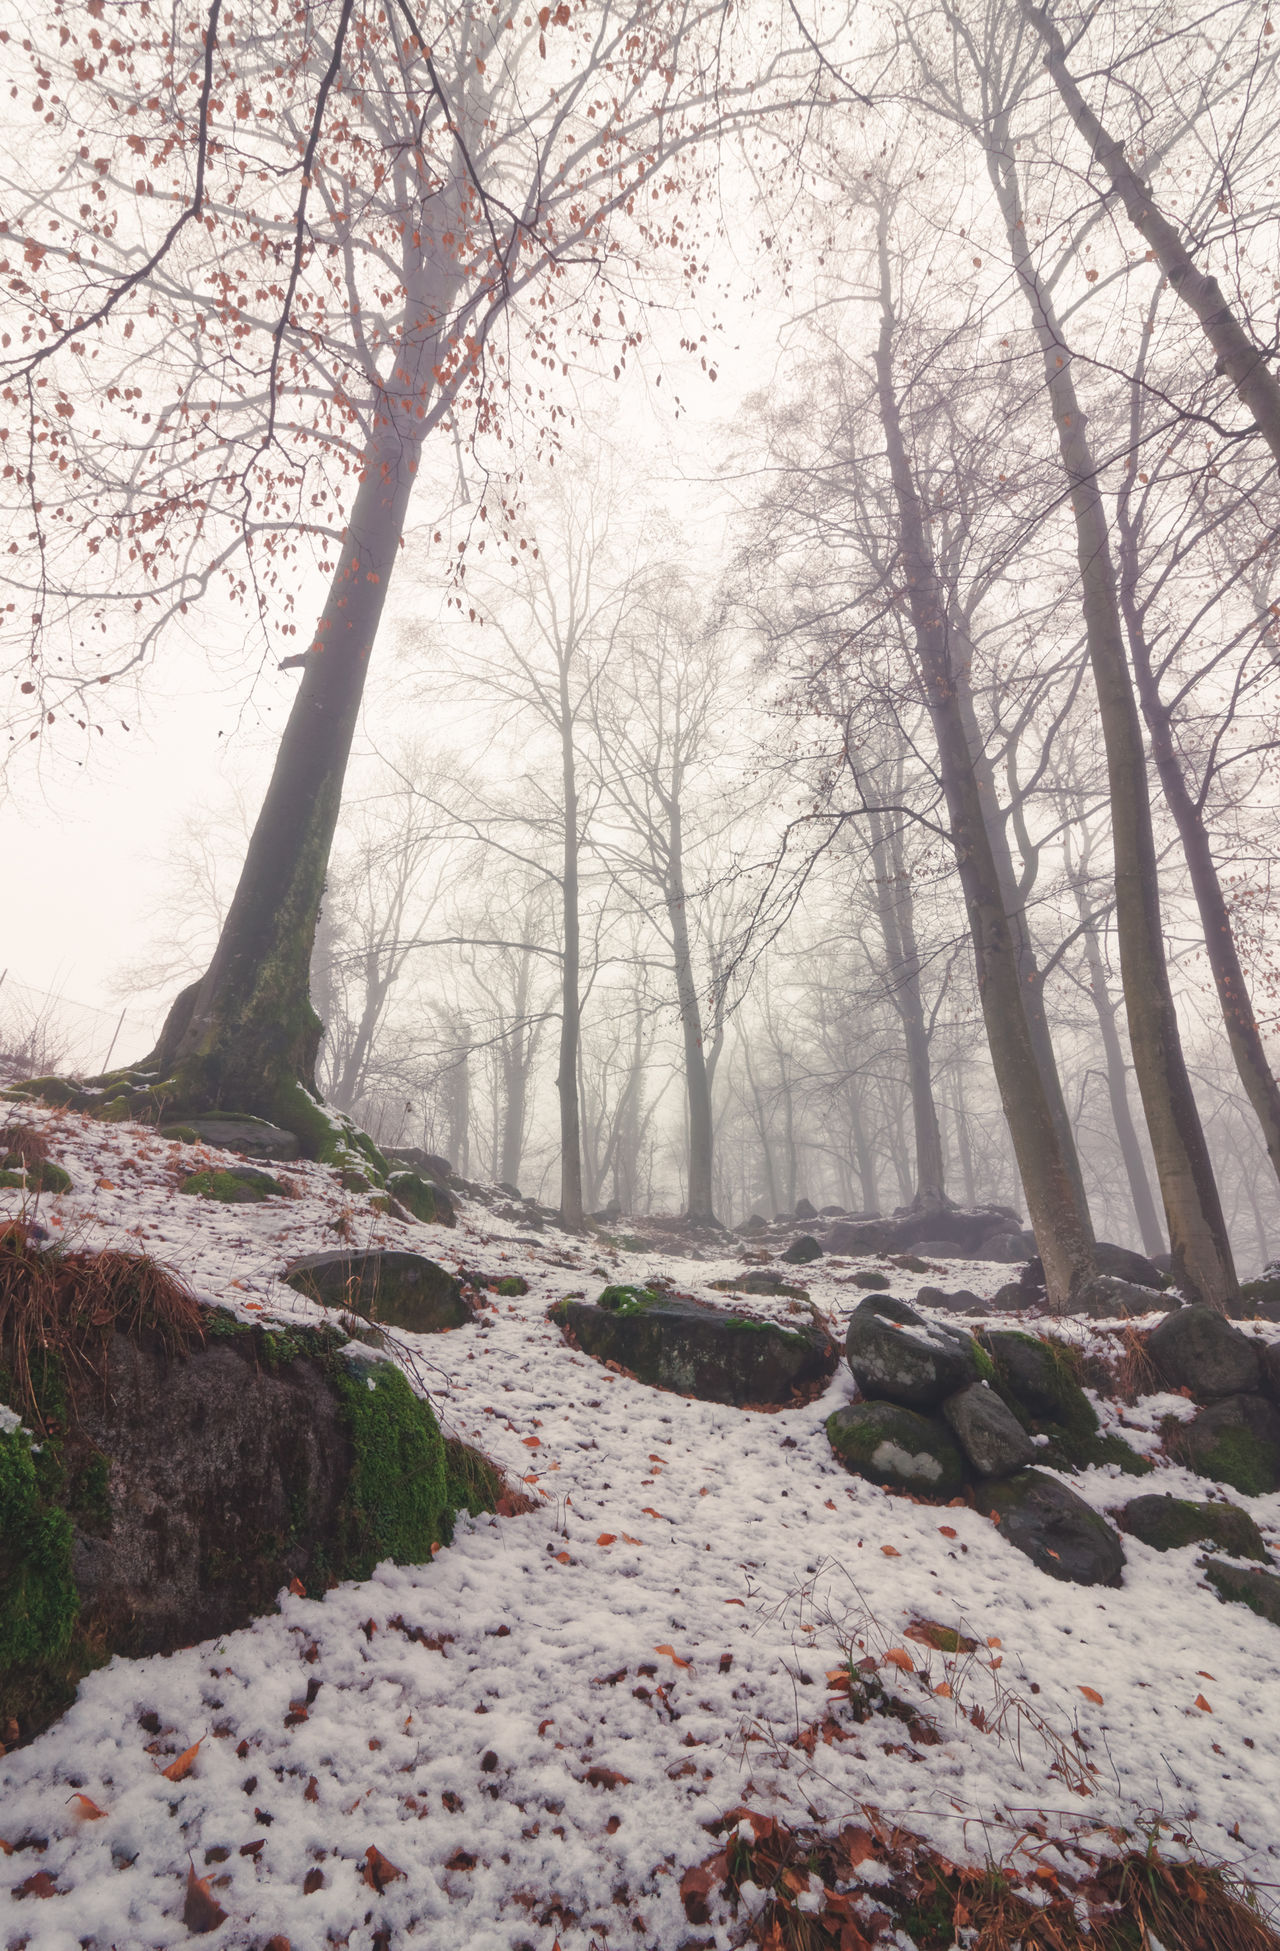 Snowing Forest on the fog in winter Alps Bare Tree Beauty In Nature Branch Day Fog Forest Italy Landscape Nature No People Outdoors Plants Scenics Sky Sweet Tranquility Tree Tree Trunk